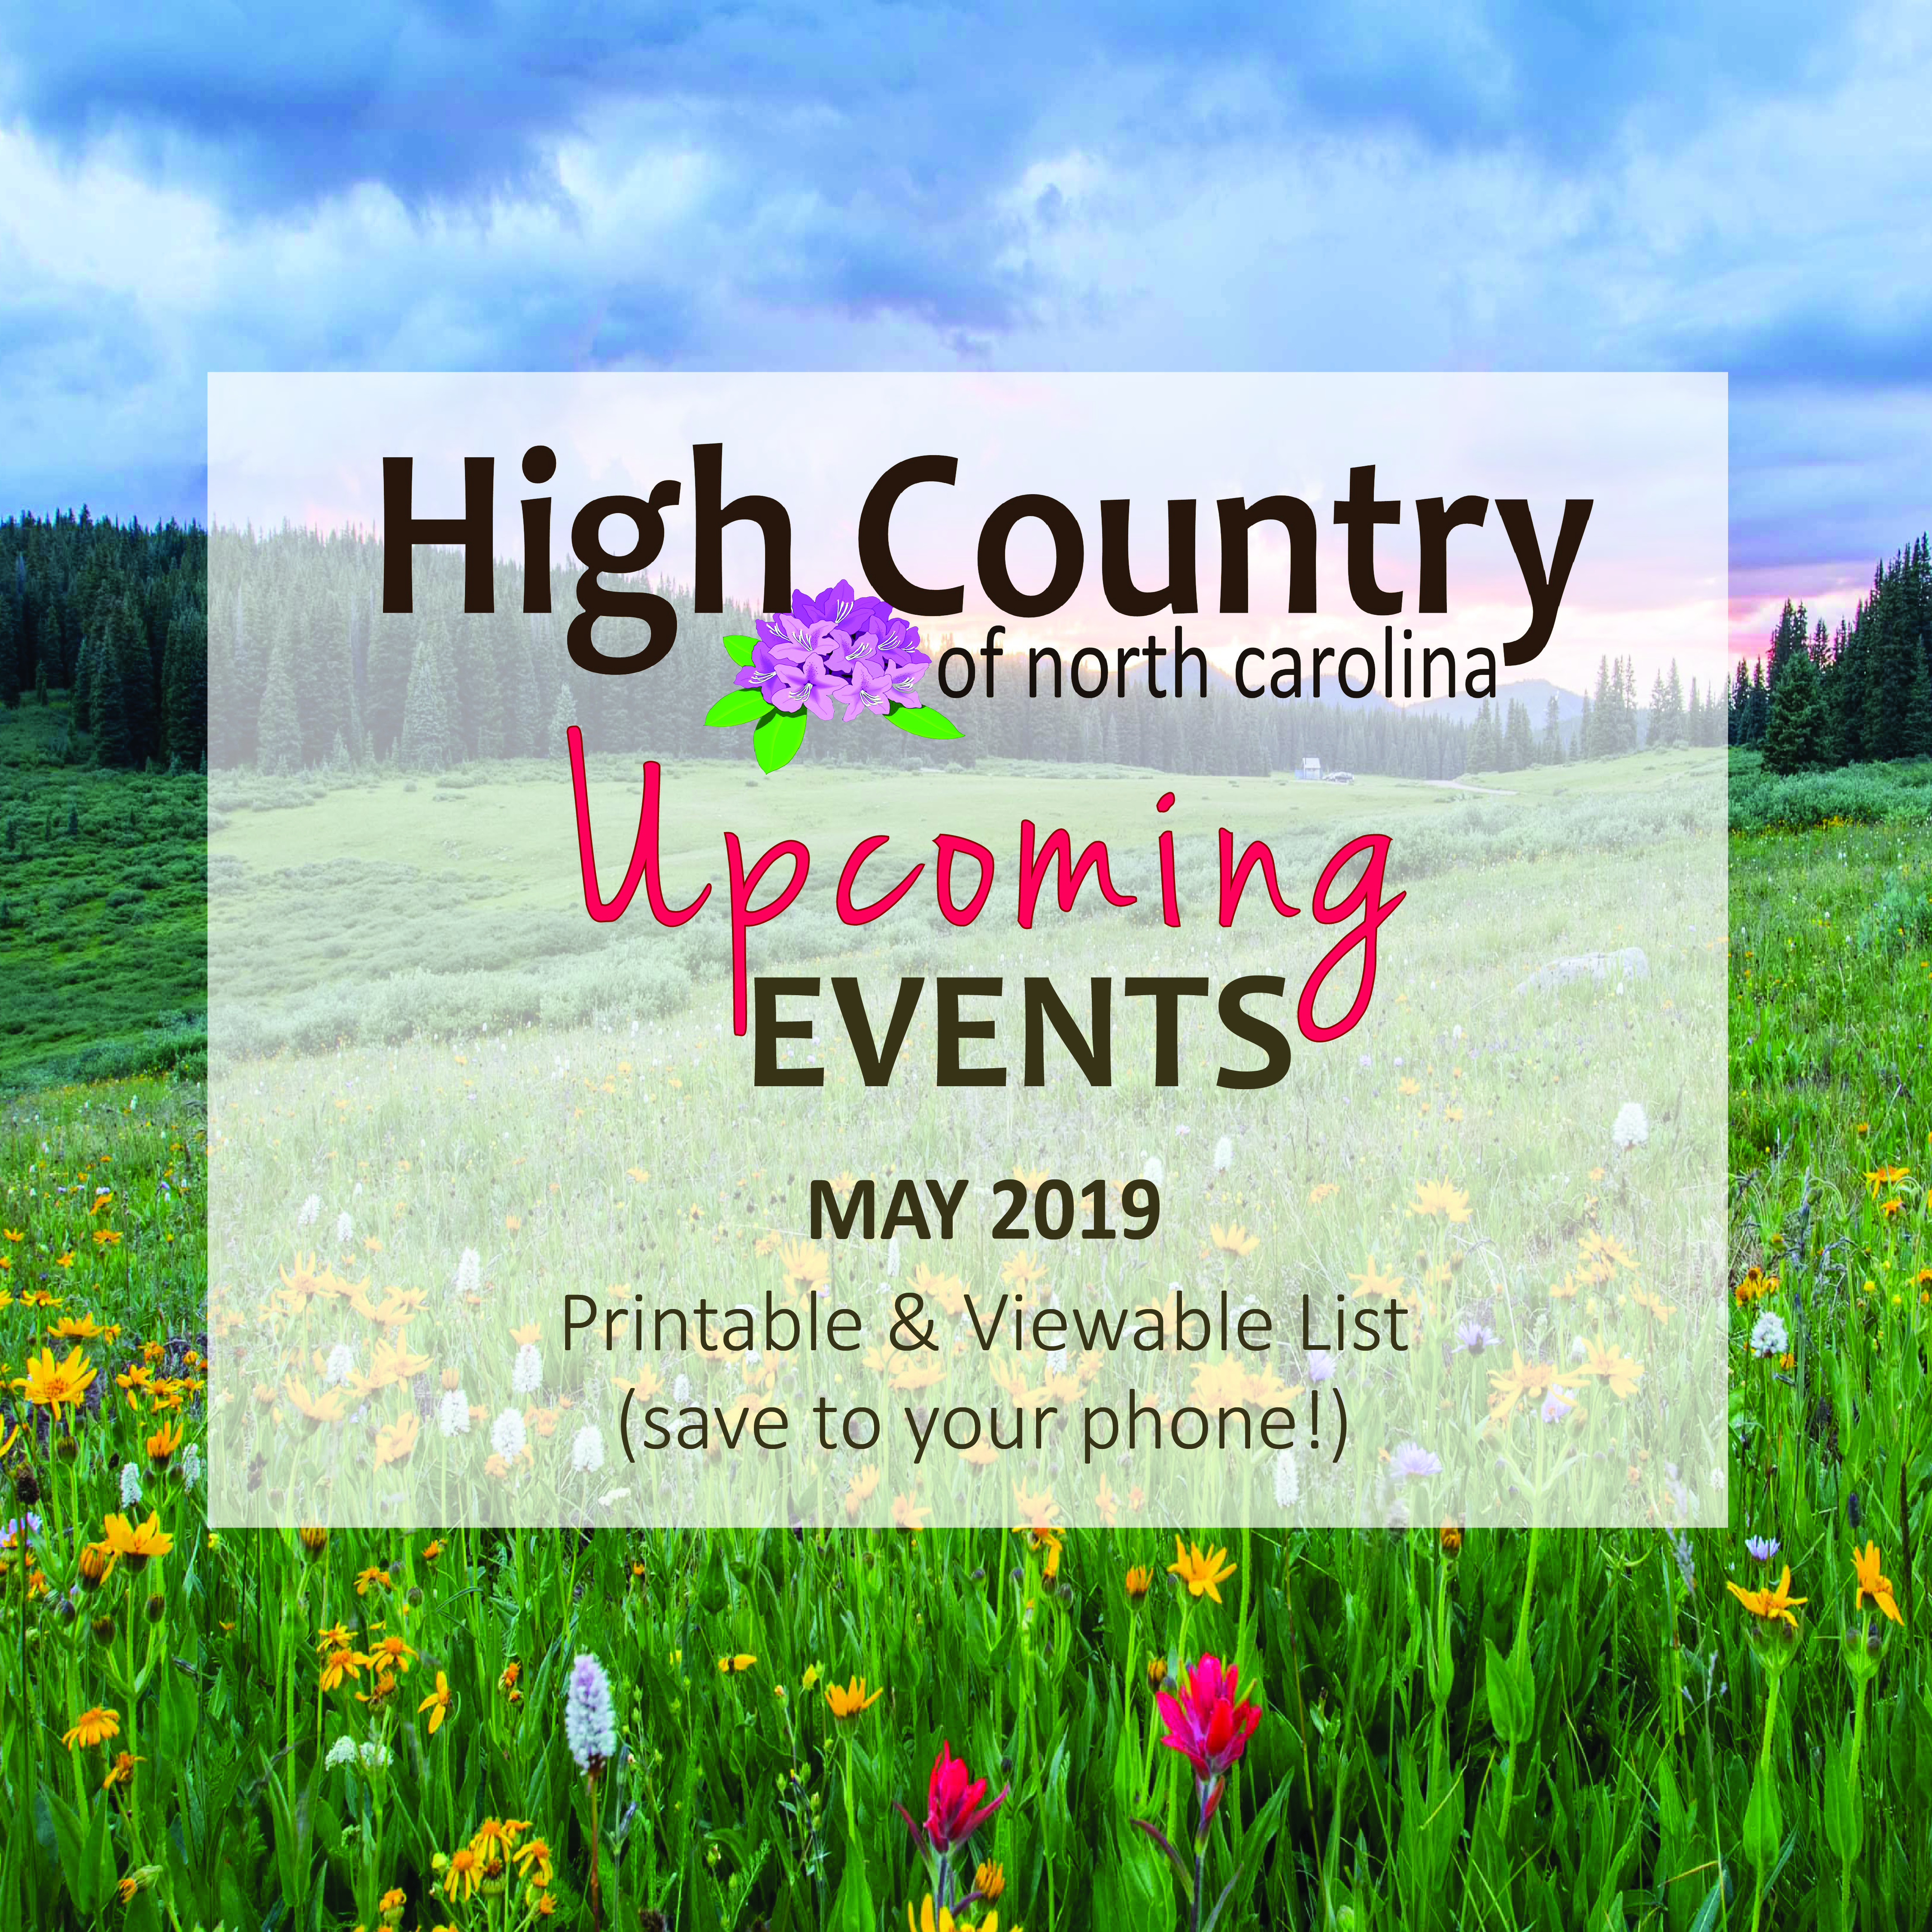 High Country Events Calendar May 2019